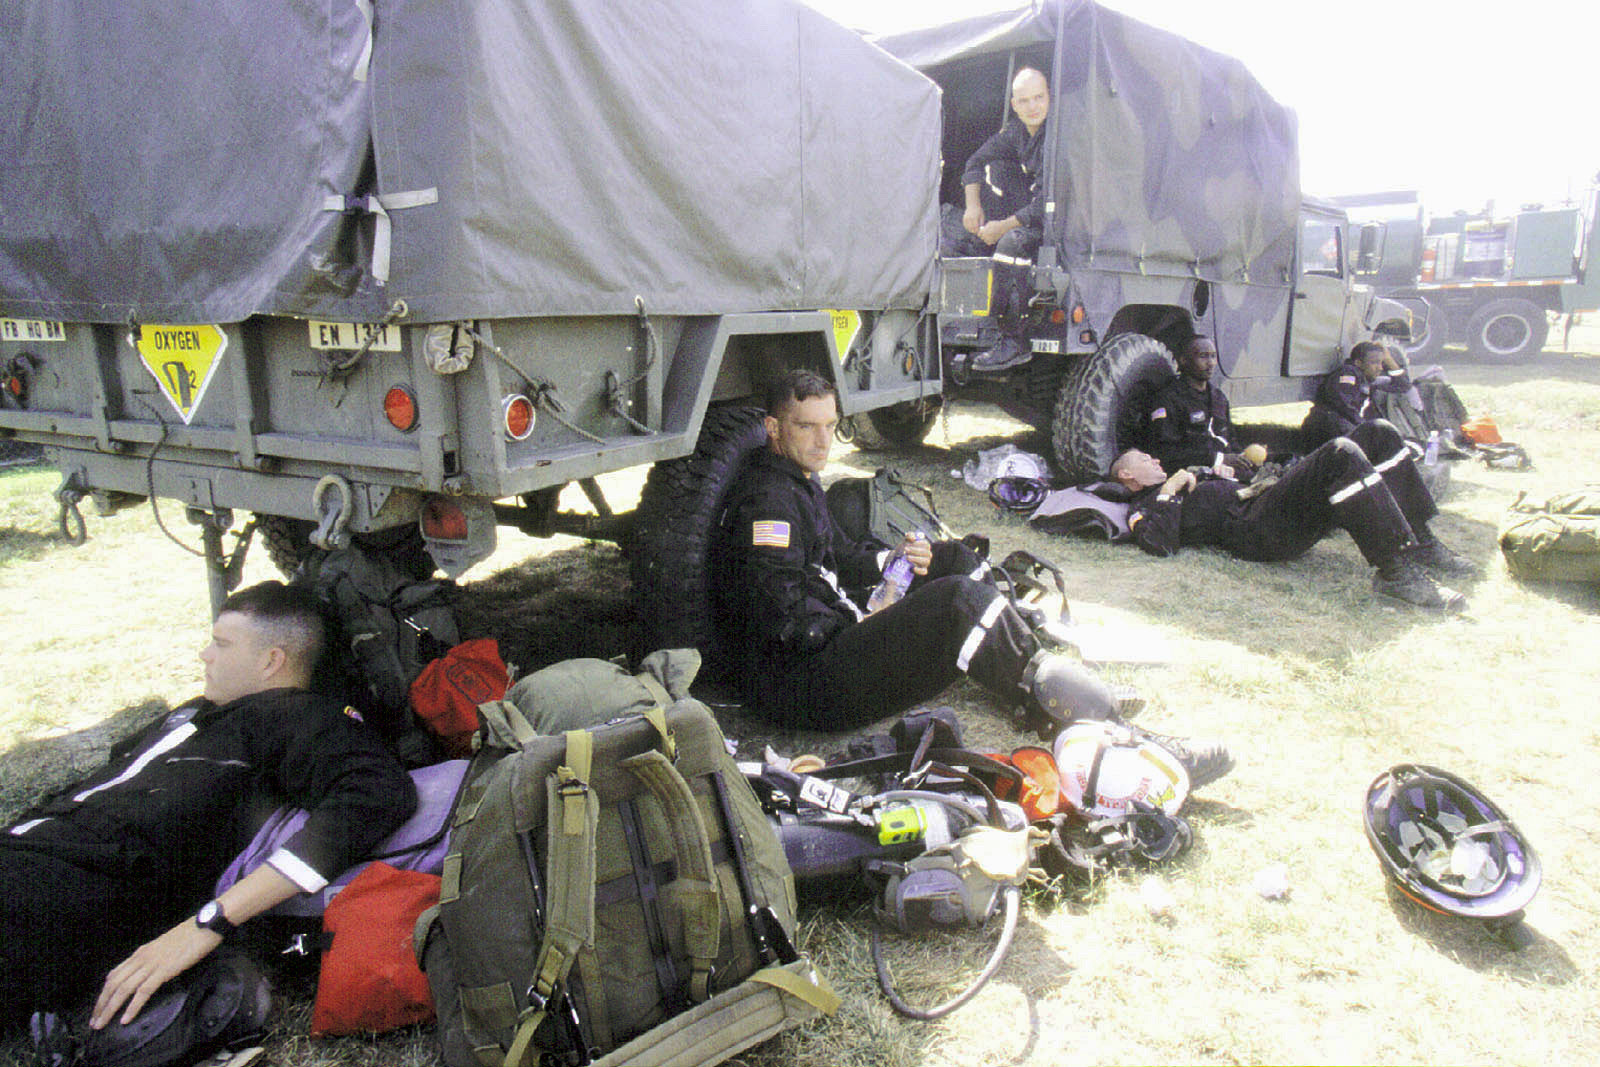 Military District of Washington (MDW) Engineer Company (Technical Rescue) engineers rest in e shade of a M1097 High-Mobility Multipurpose Wheeled Vehicle (HMMWV) and M105 trailer before going back inside e Pentagon to search for more bodies on September 12, 2001. The morning before, in an attempt to frighten e American people, five members of Al-Qaida, a terrorist group of fundamentalist Muslims, hijacked American Airlines Flight 77, en flew a circuitous route returning to Washington and impacting e Pentagon killing all 64 passengers onboard and 125 people on e ground. The impact destroyed or damaged four of e five rings in at section of e building. Firefighters fought...